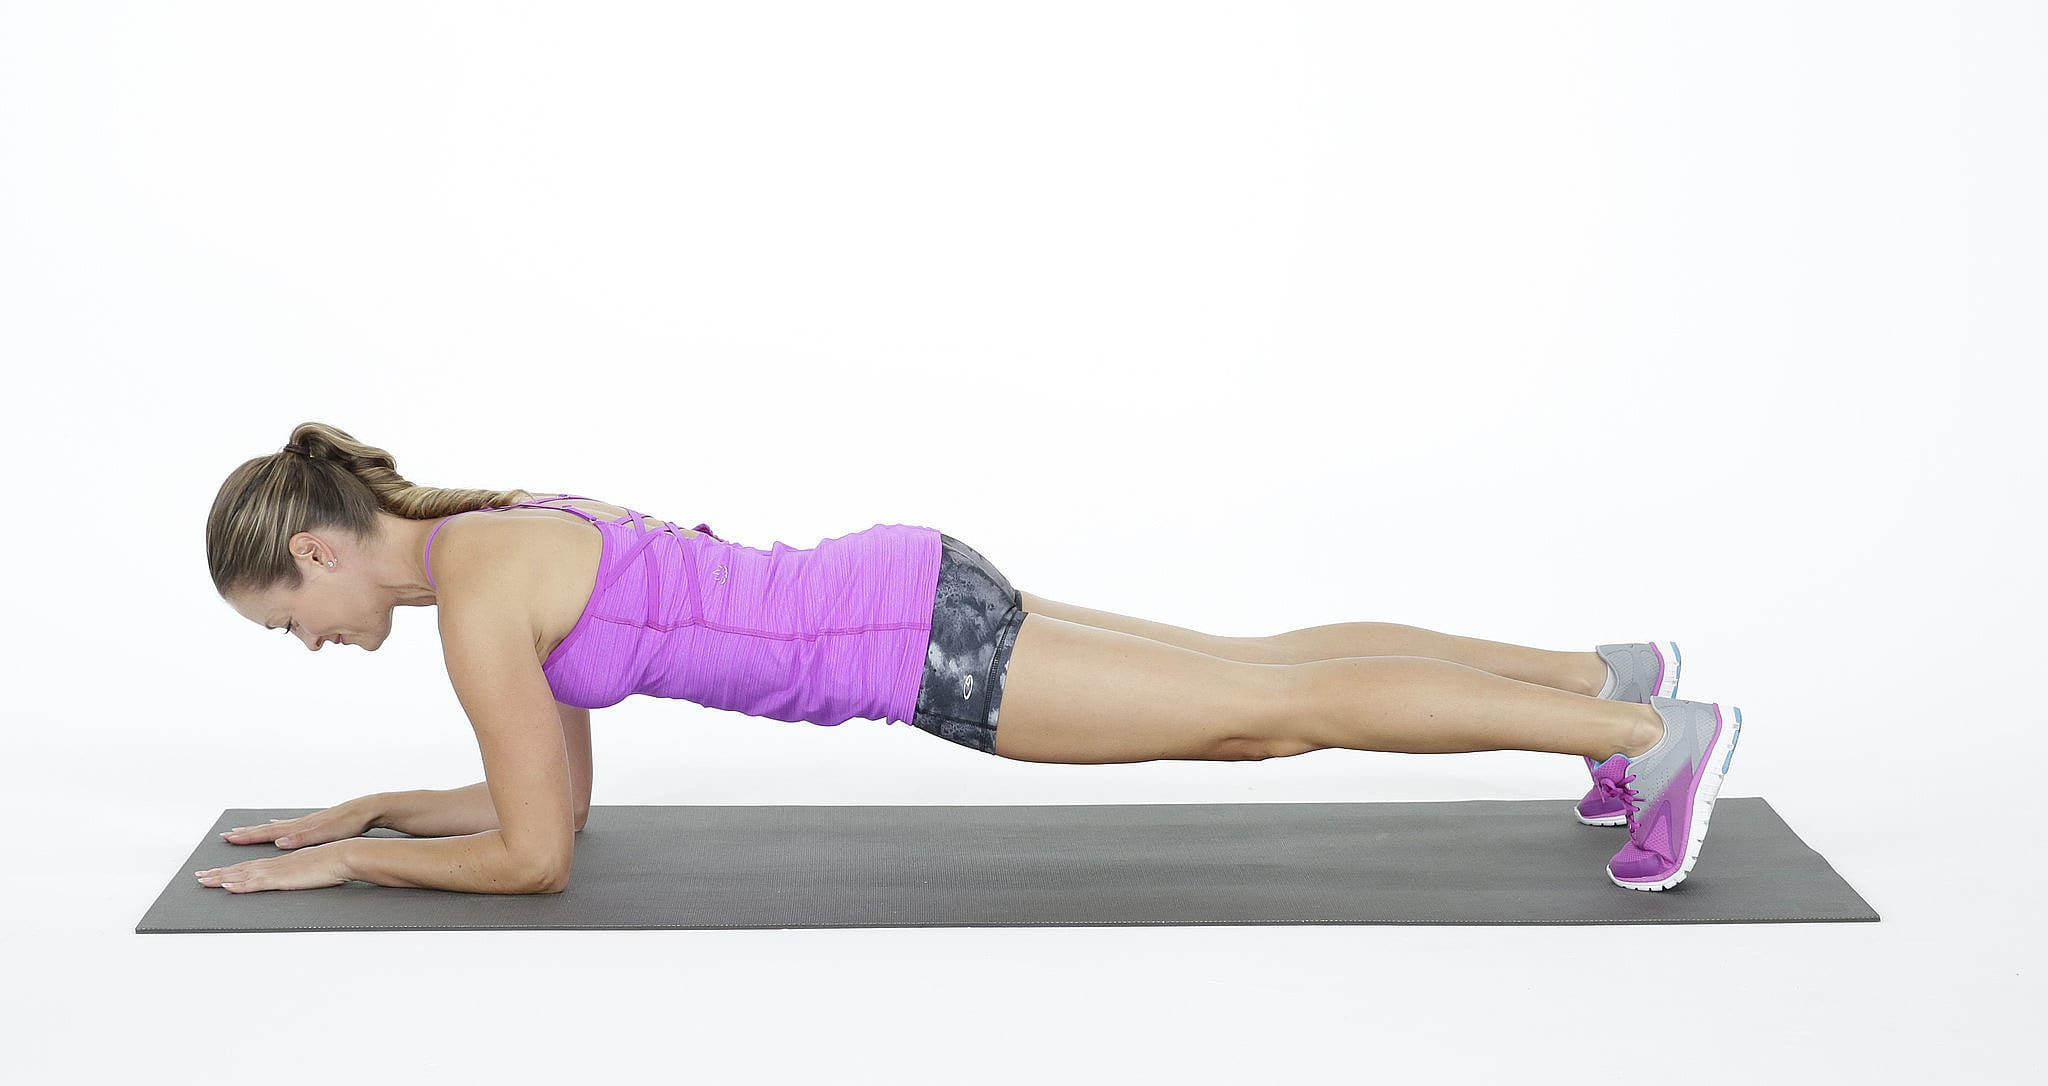 Why Should We Do Planks Every Day?